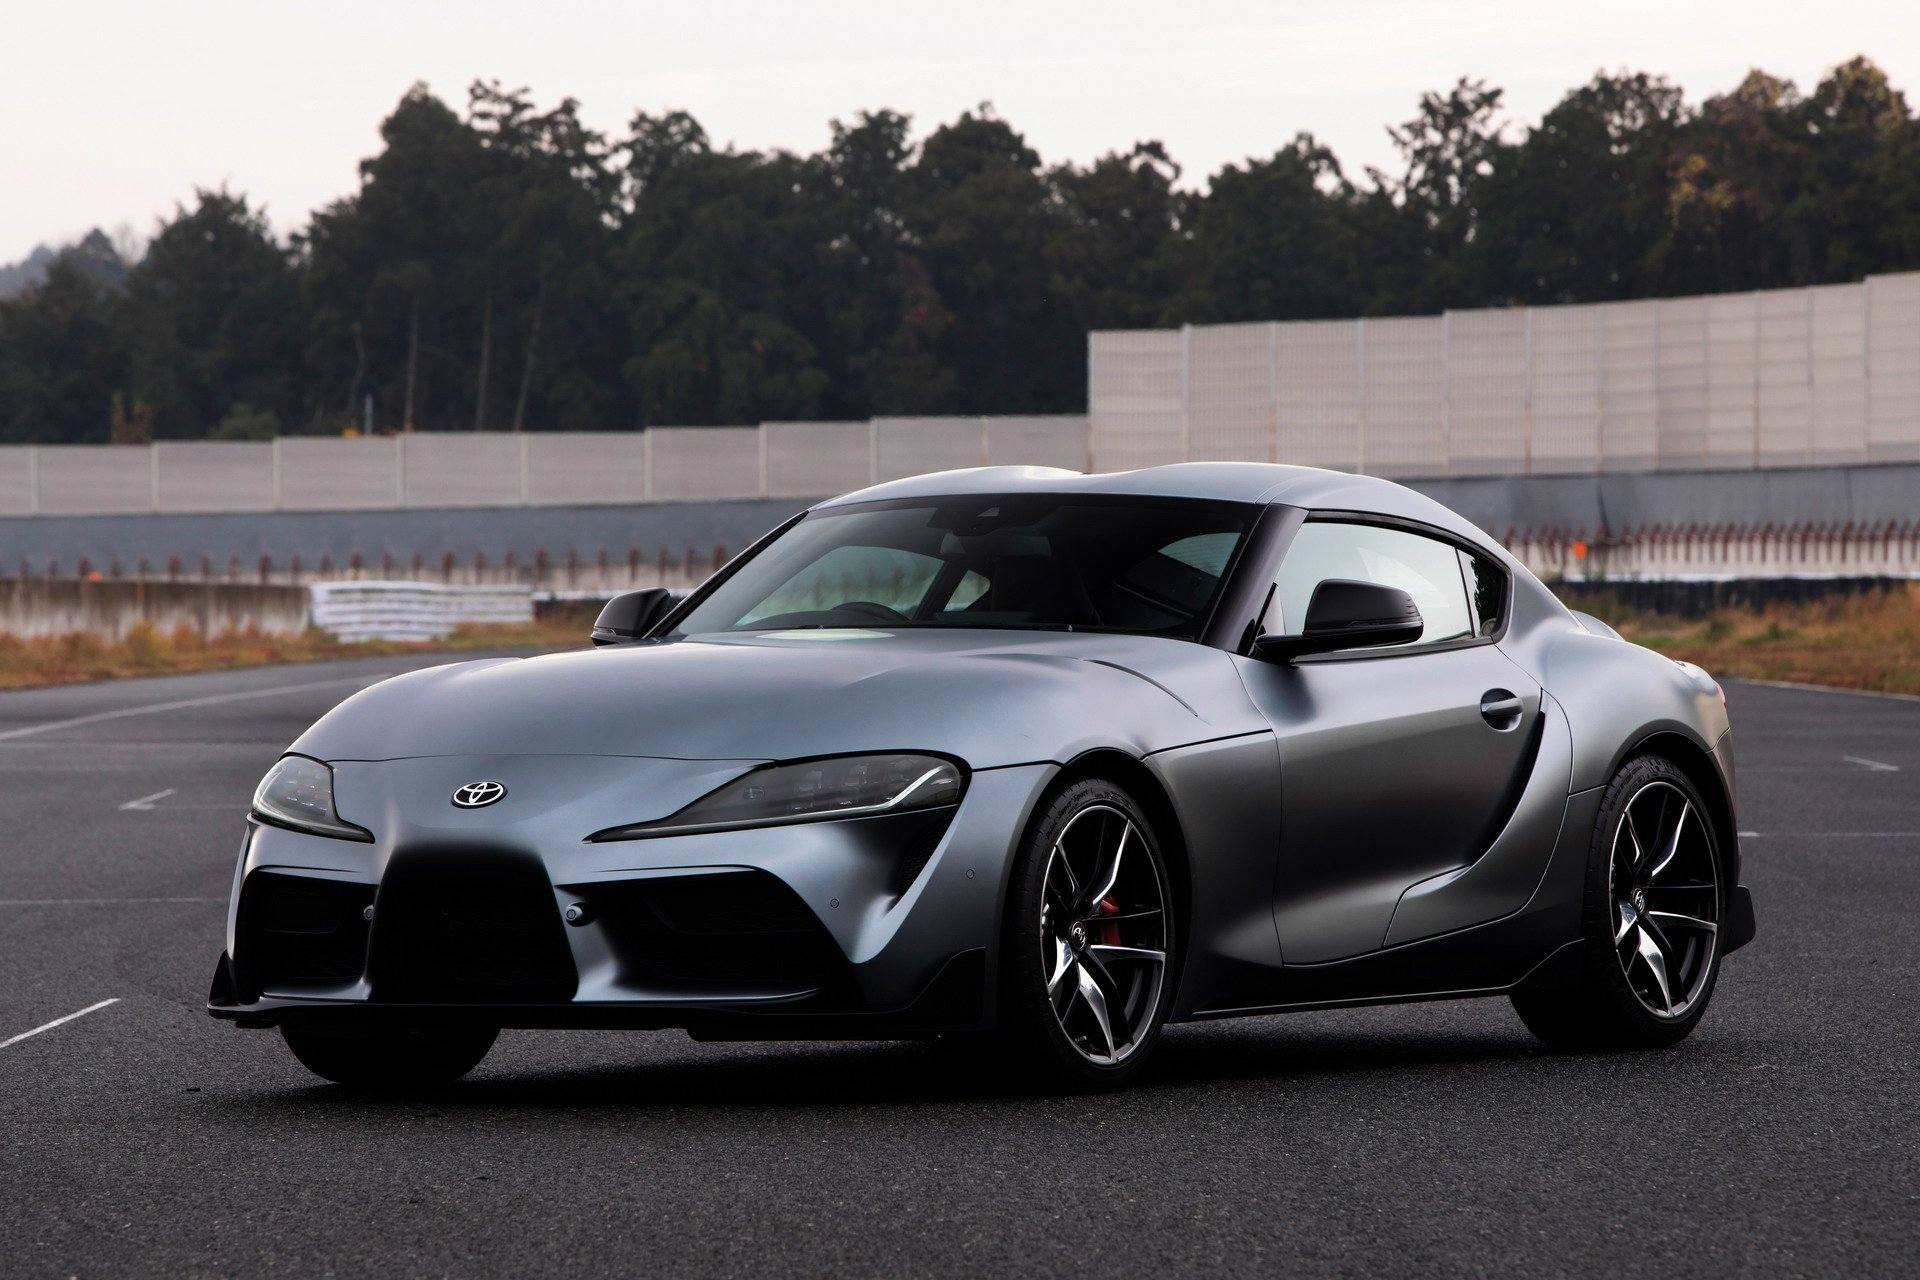 2020 Toyota Gr Supra Certified In The U S With 2 0 Liter Turbo